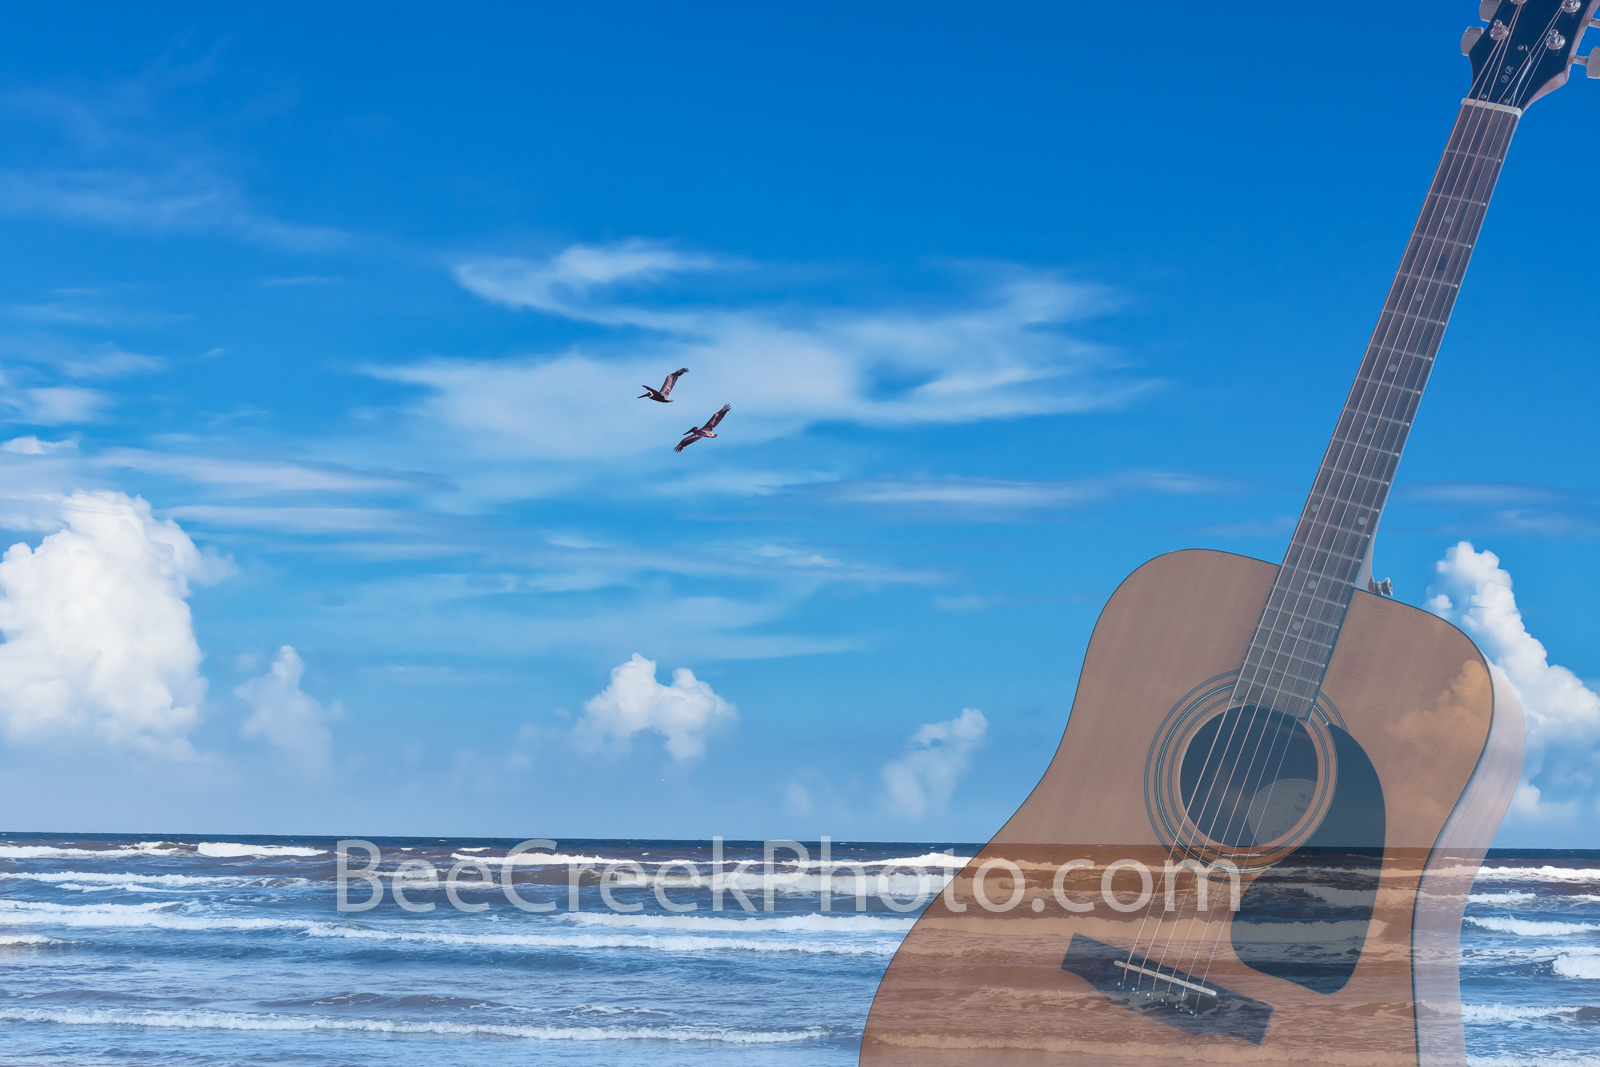 Seaside Guitar Blues - This ocean side surf with pelicans flying over create the mood for some sea side blues. This is a digital...